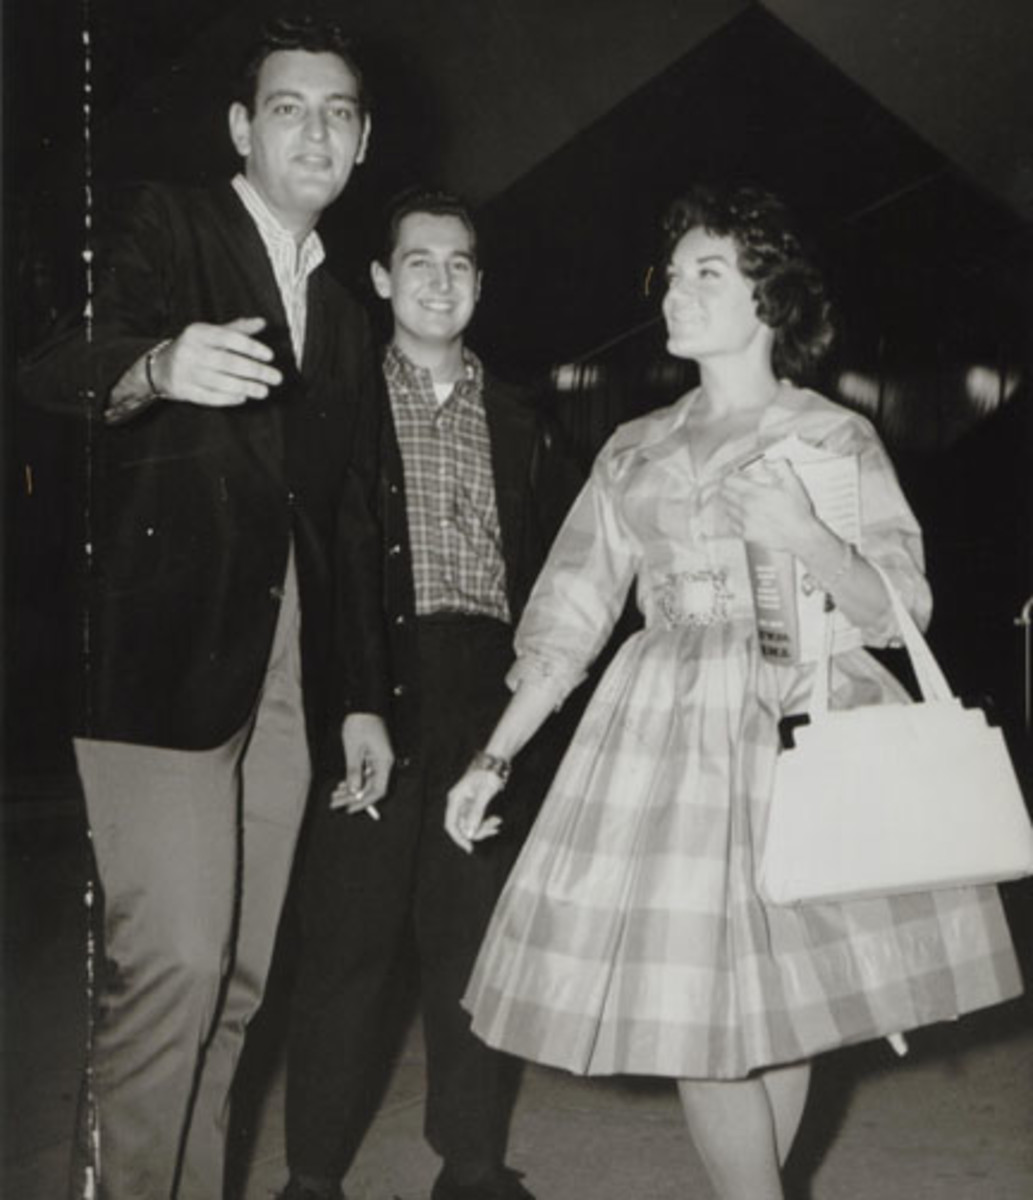 Howard Greenfield with Neil Sedaka and Connie Francis